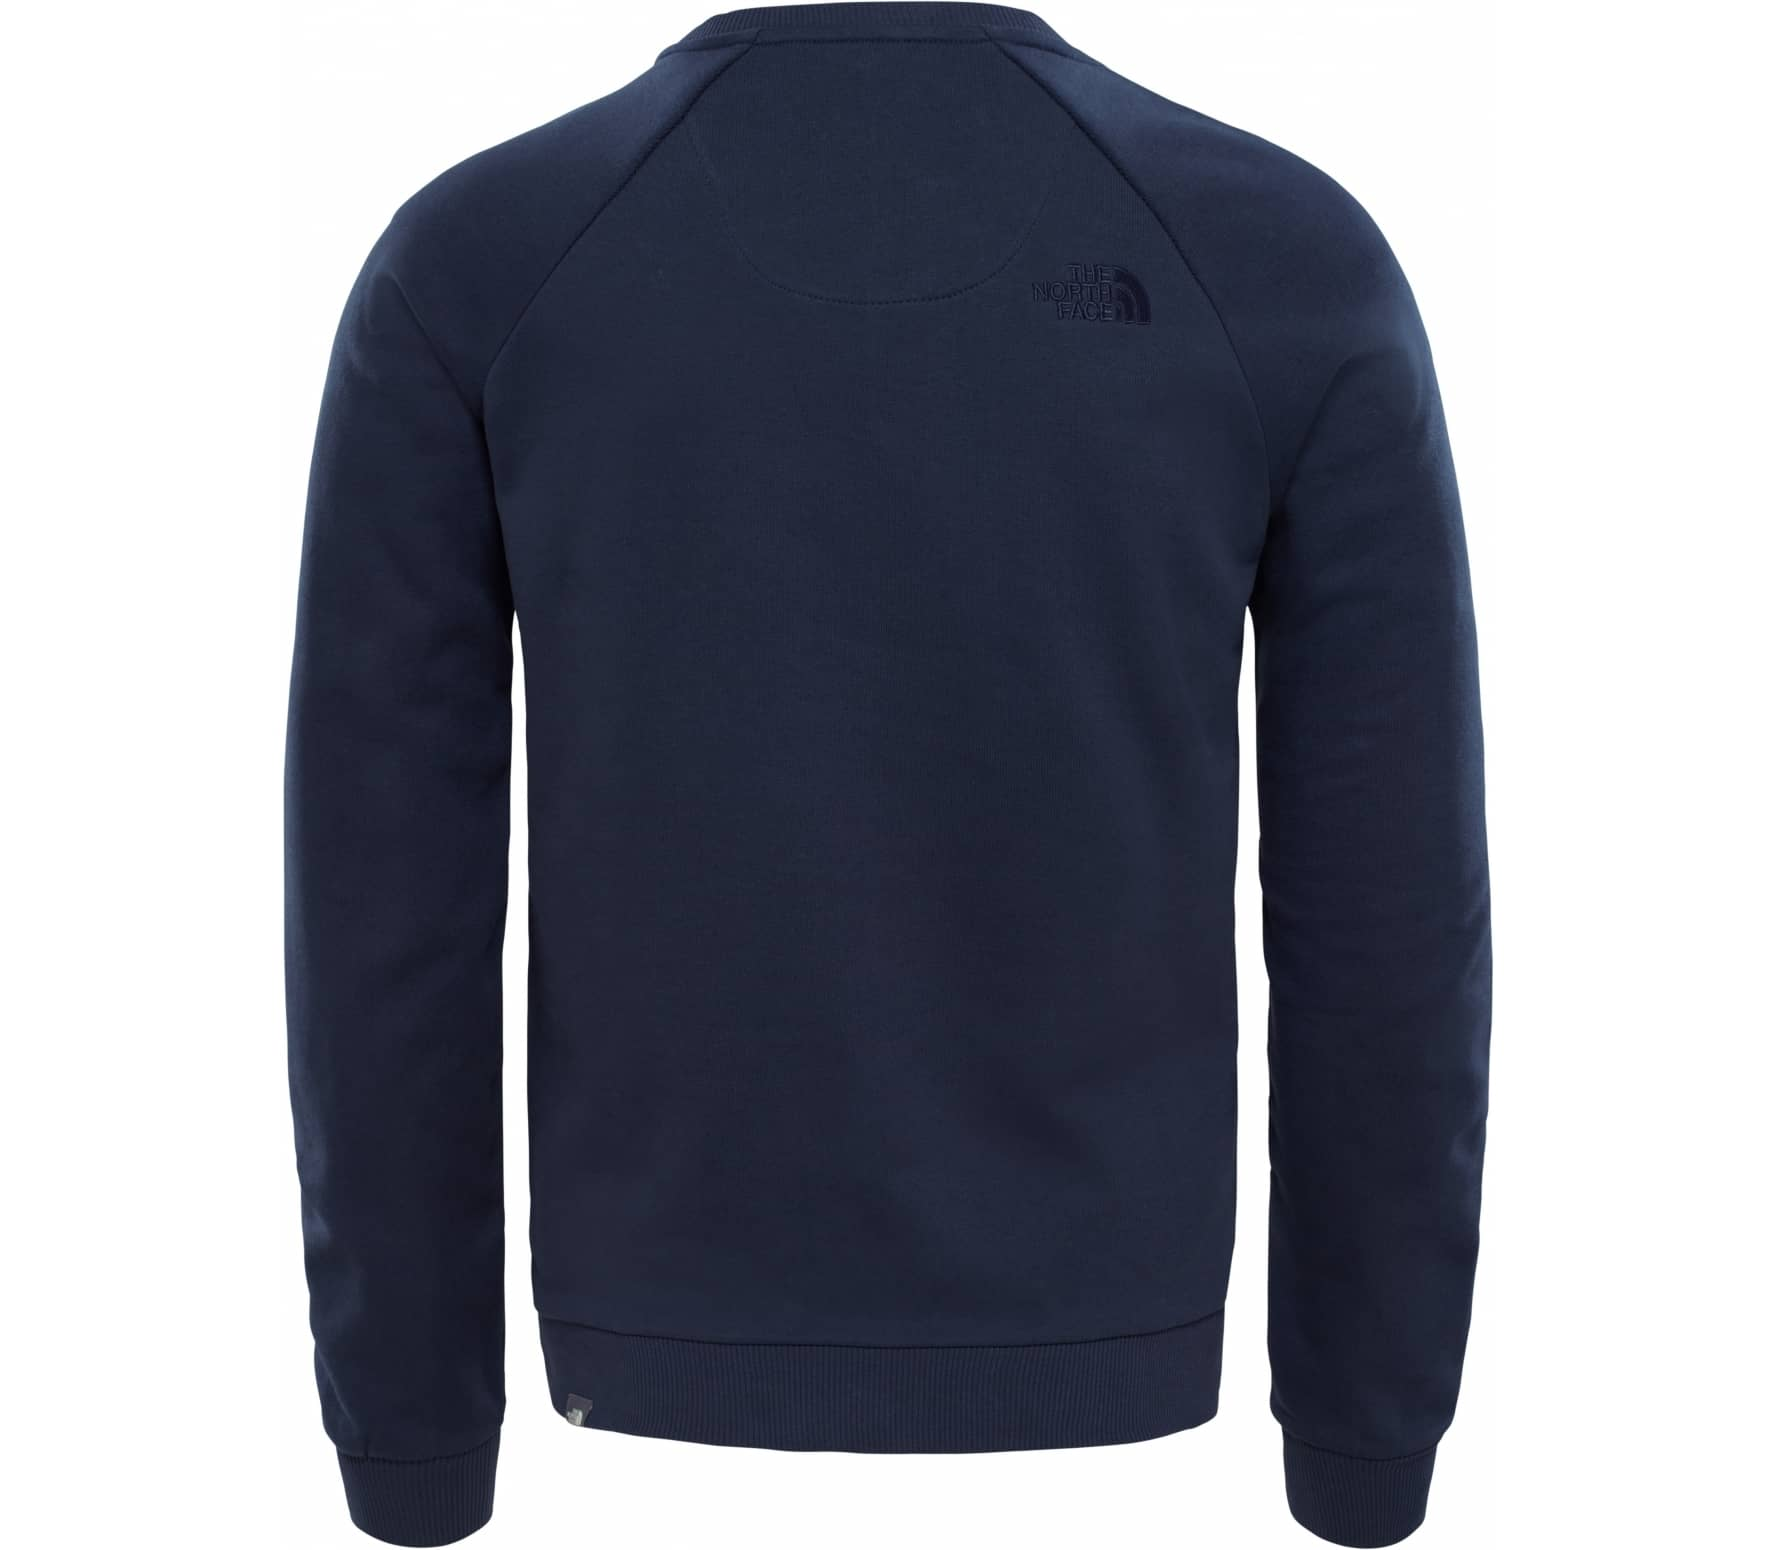 The North Face - Raglan Simple Dome Crew Uomo maglione in pile (blu scuro) fa43a6b01945